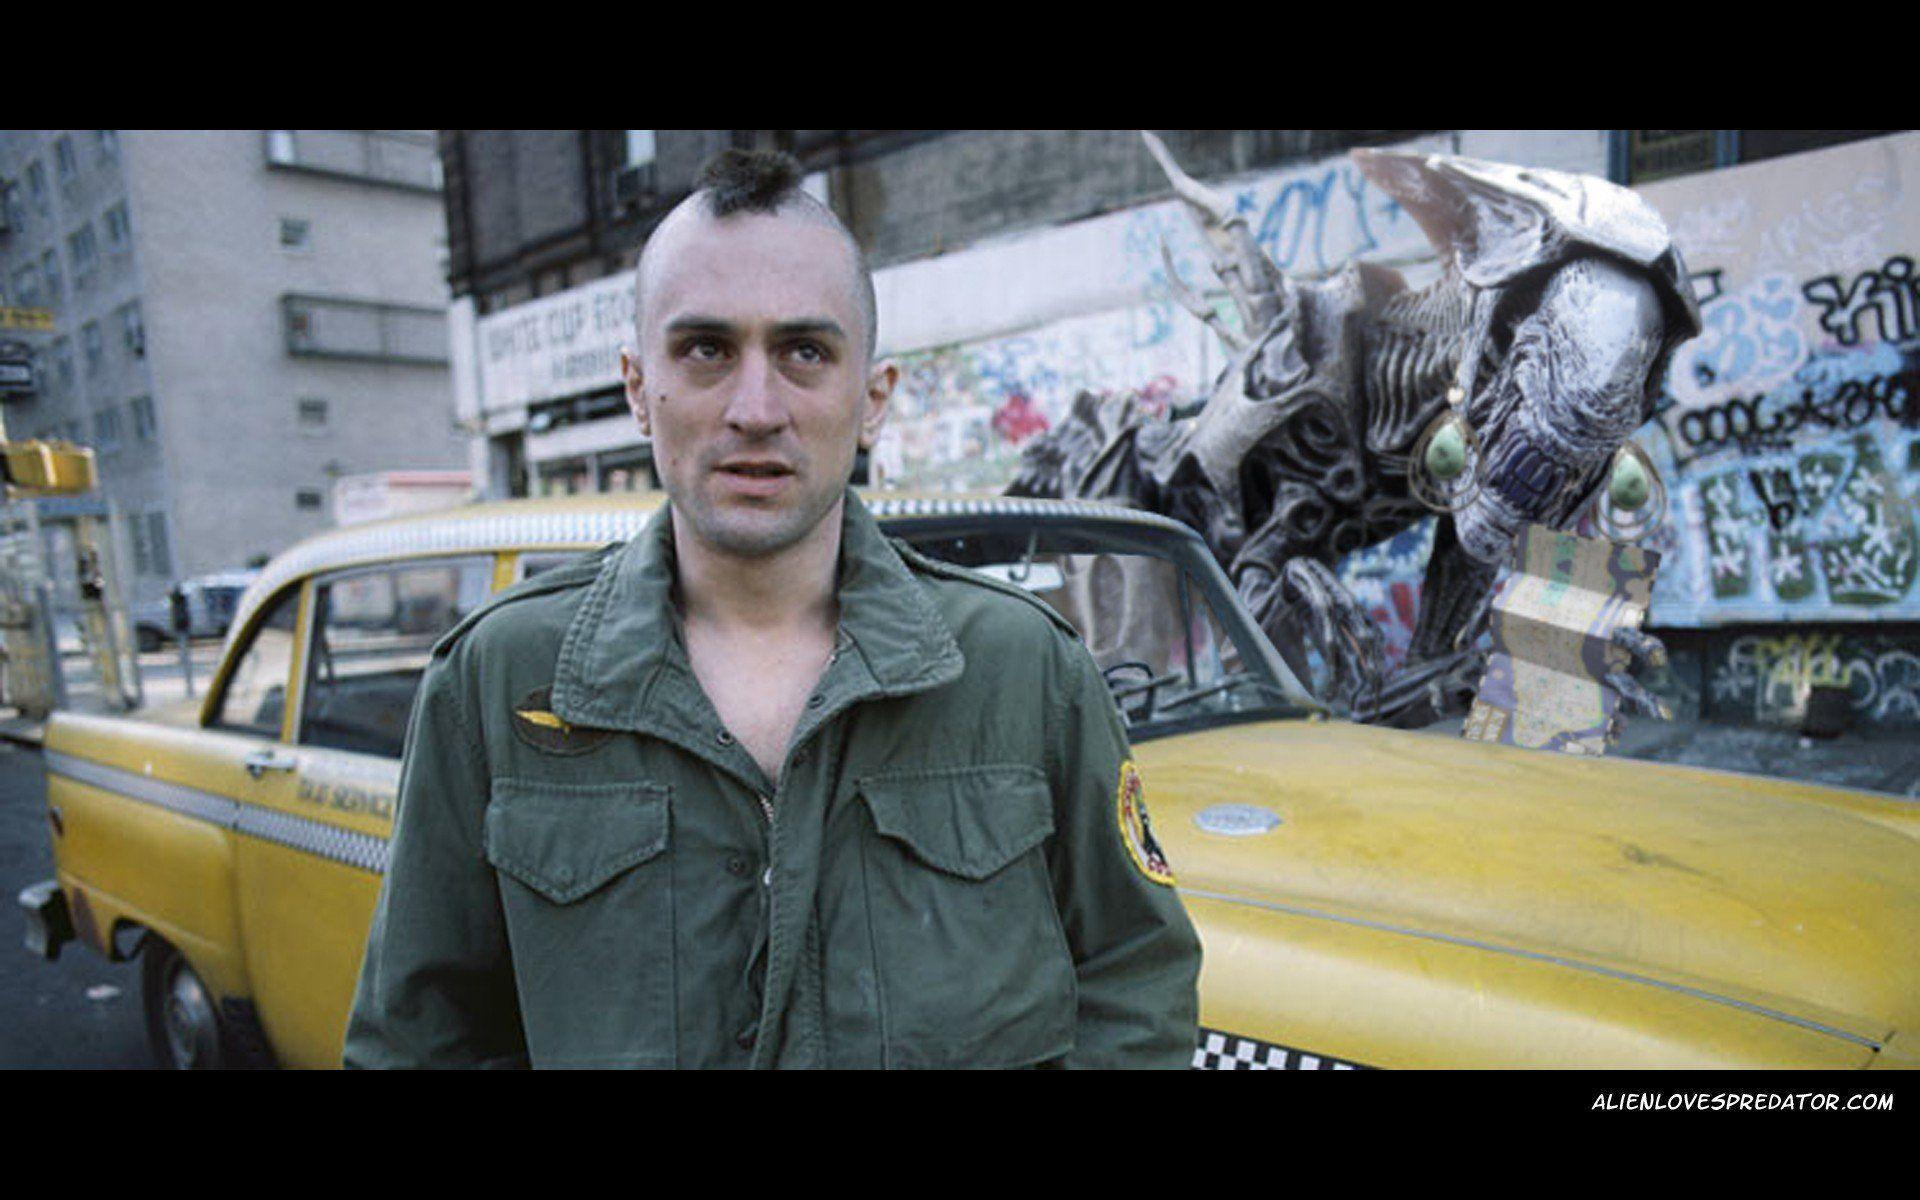 Movies Taxi Driver Travis Bickle Robert De Niro wallpapers